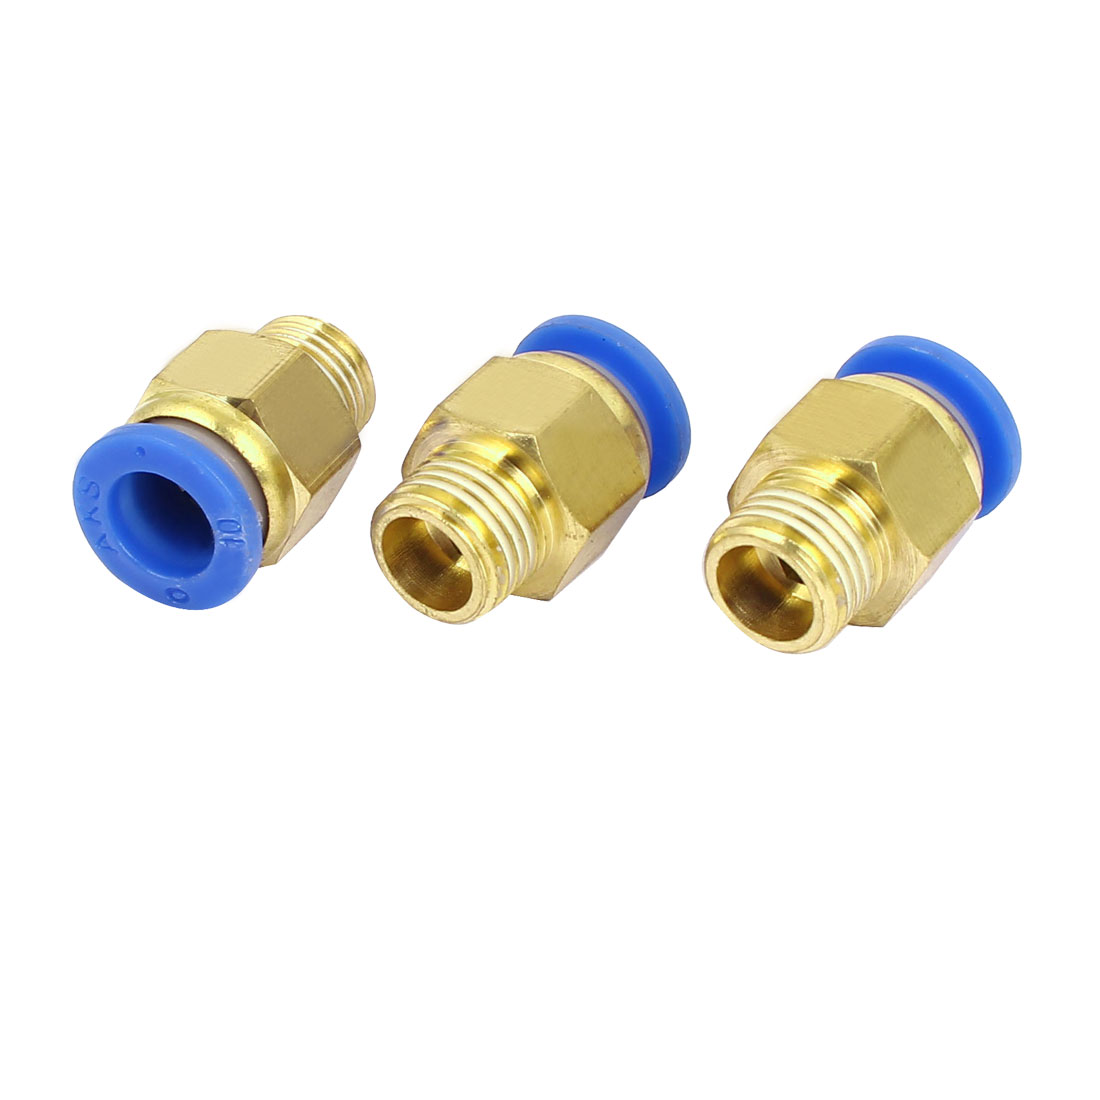 10mm to 1/4BSP Male Thread Pneumatic Tubing Push In Quick Fittings 3pcs